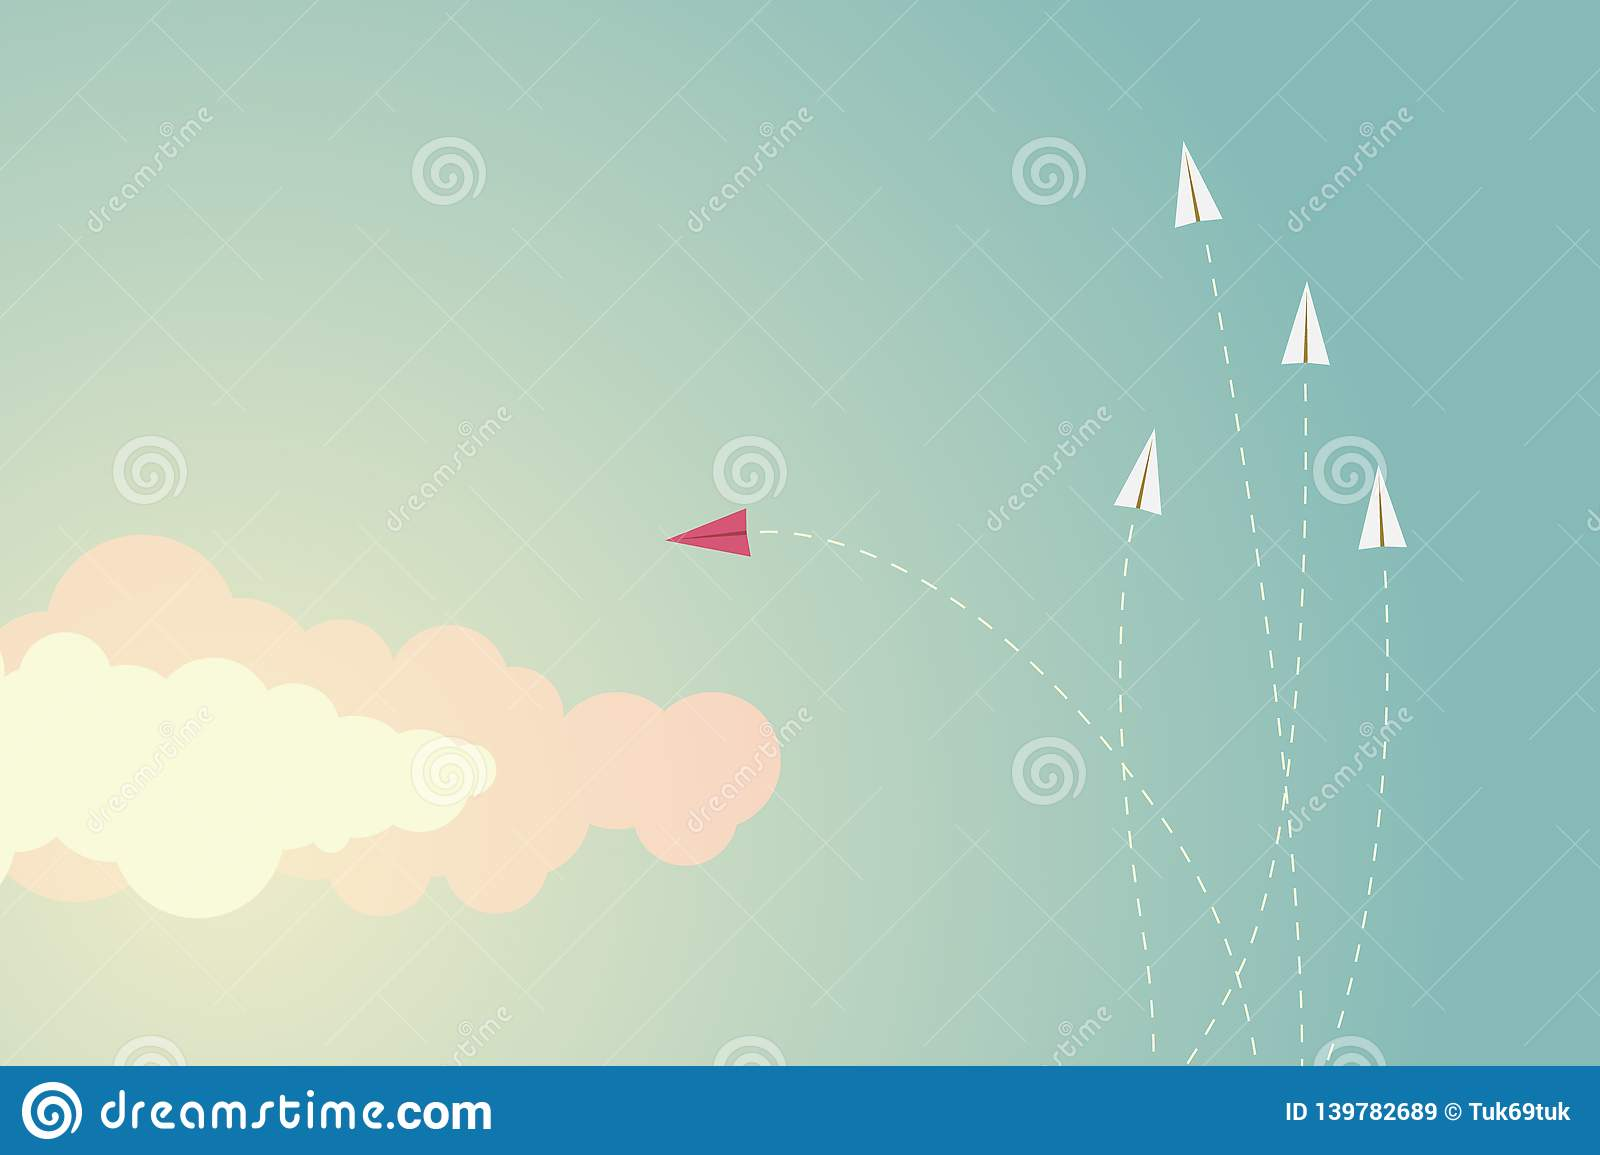 Minimalist style red airplane changing direction and ones. New idea, change, trend, courage, creative solution,business,